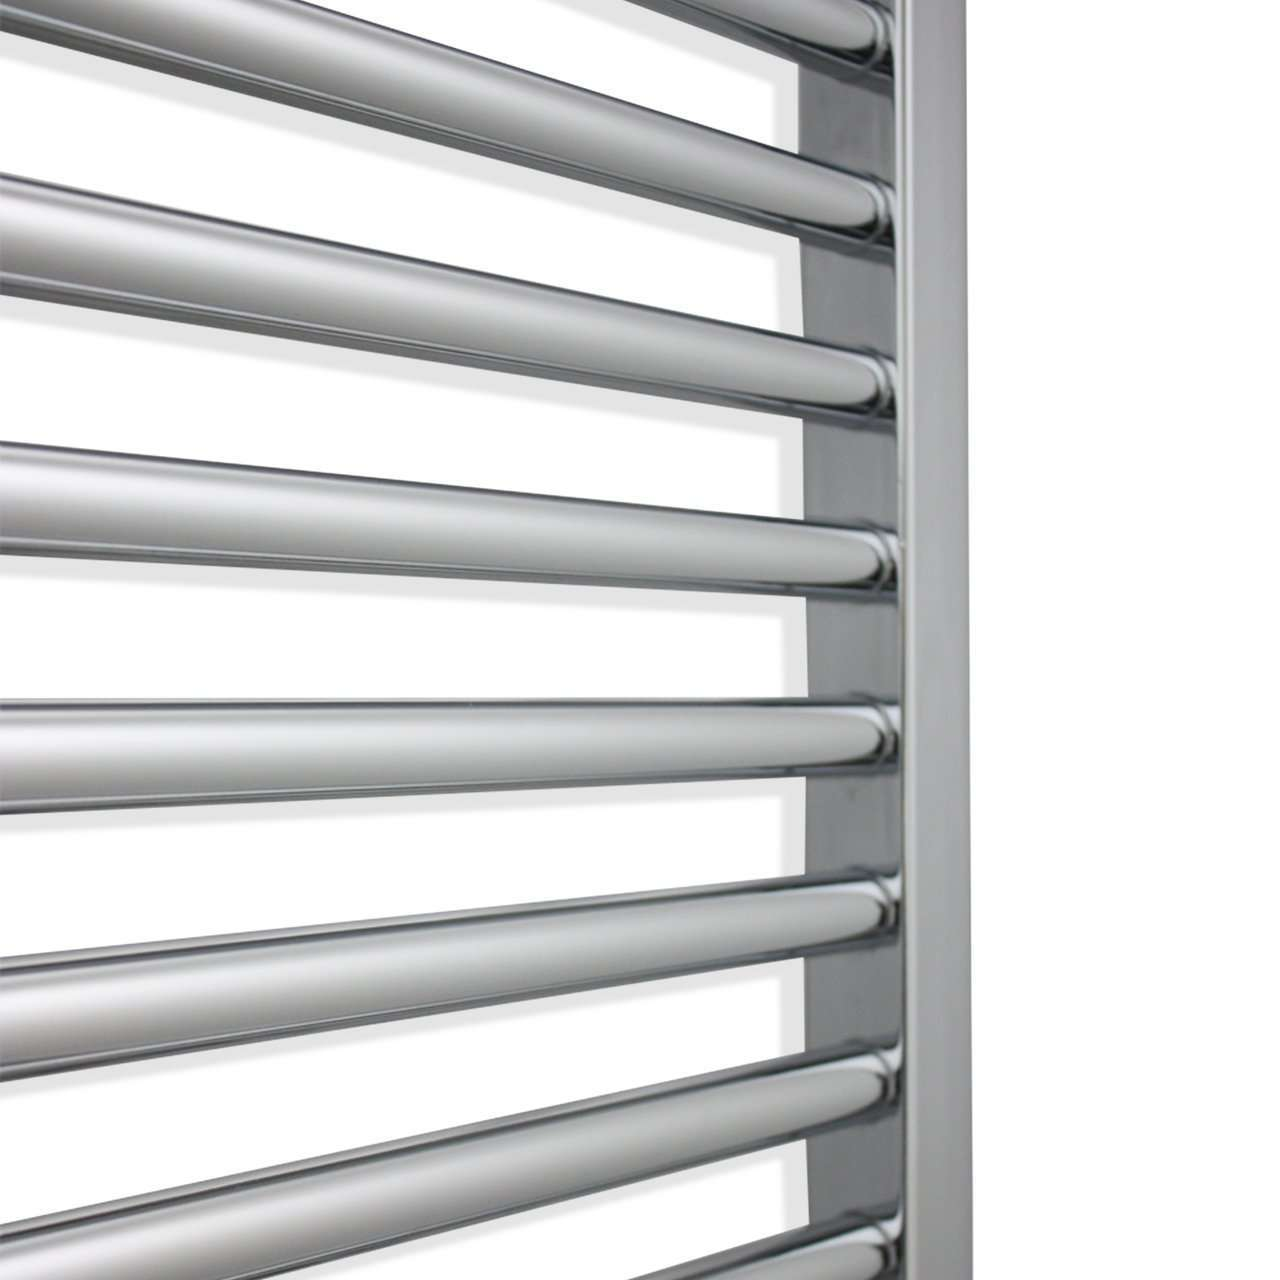 750mm Wide 1600mm High Flat Chrome Heated Towel Rail Radiator HTR